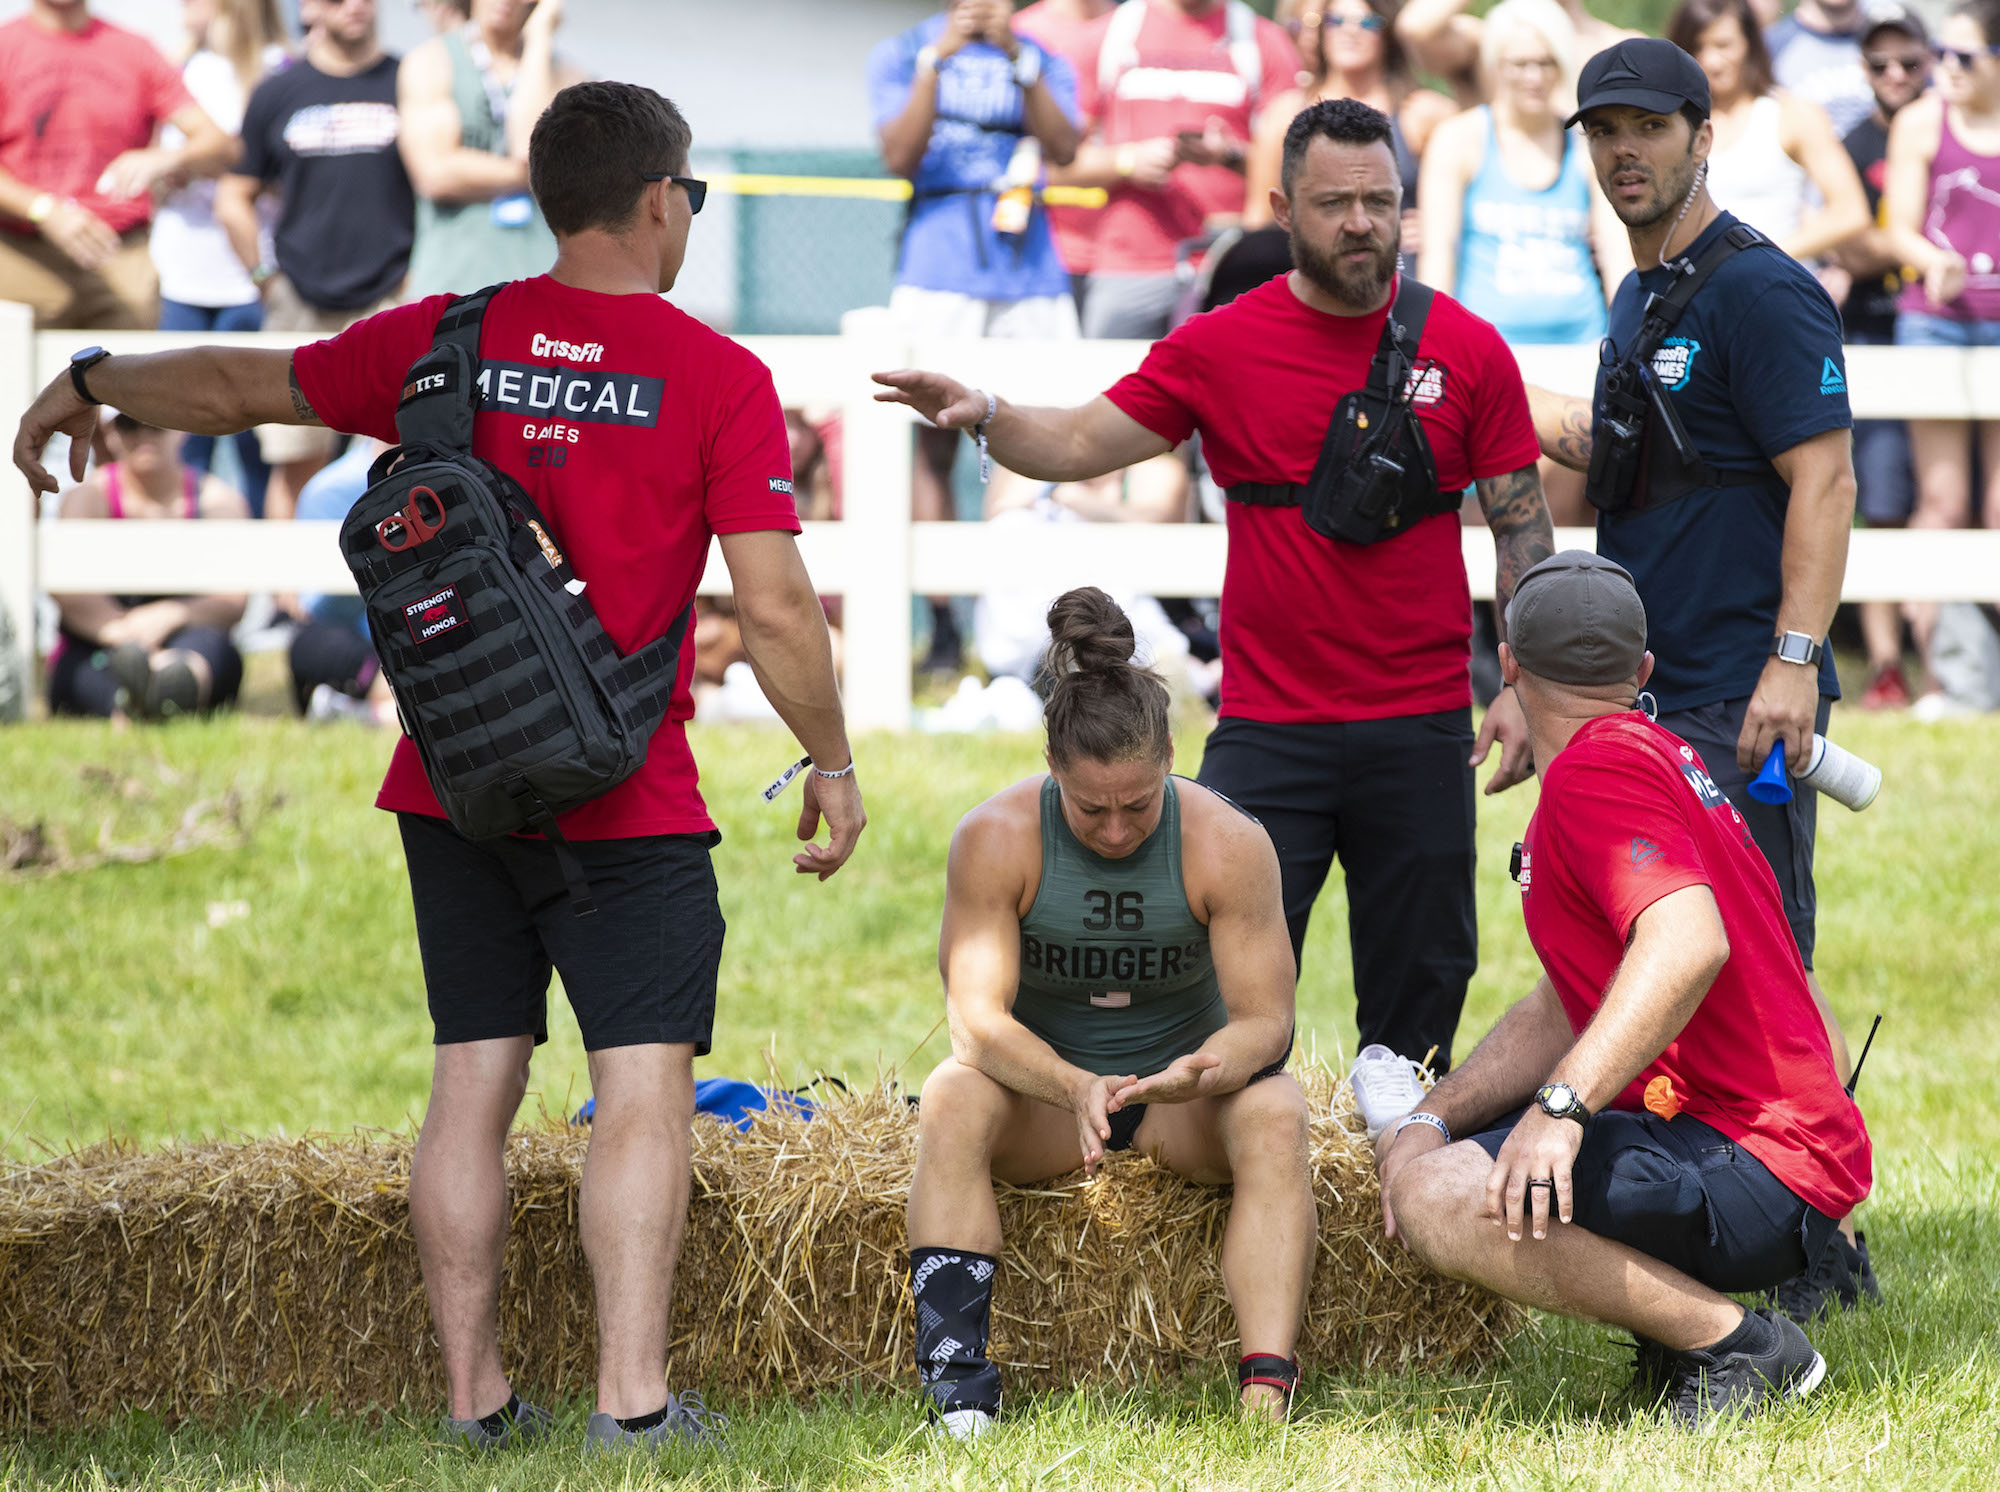 Emily Bridgers receives Medical attention after suffering an injury in The Battlegrounds at the 2018 Reebok CrossFit Games